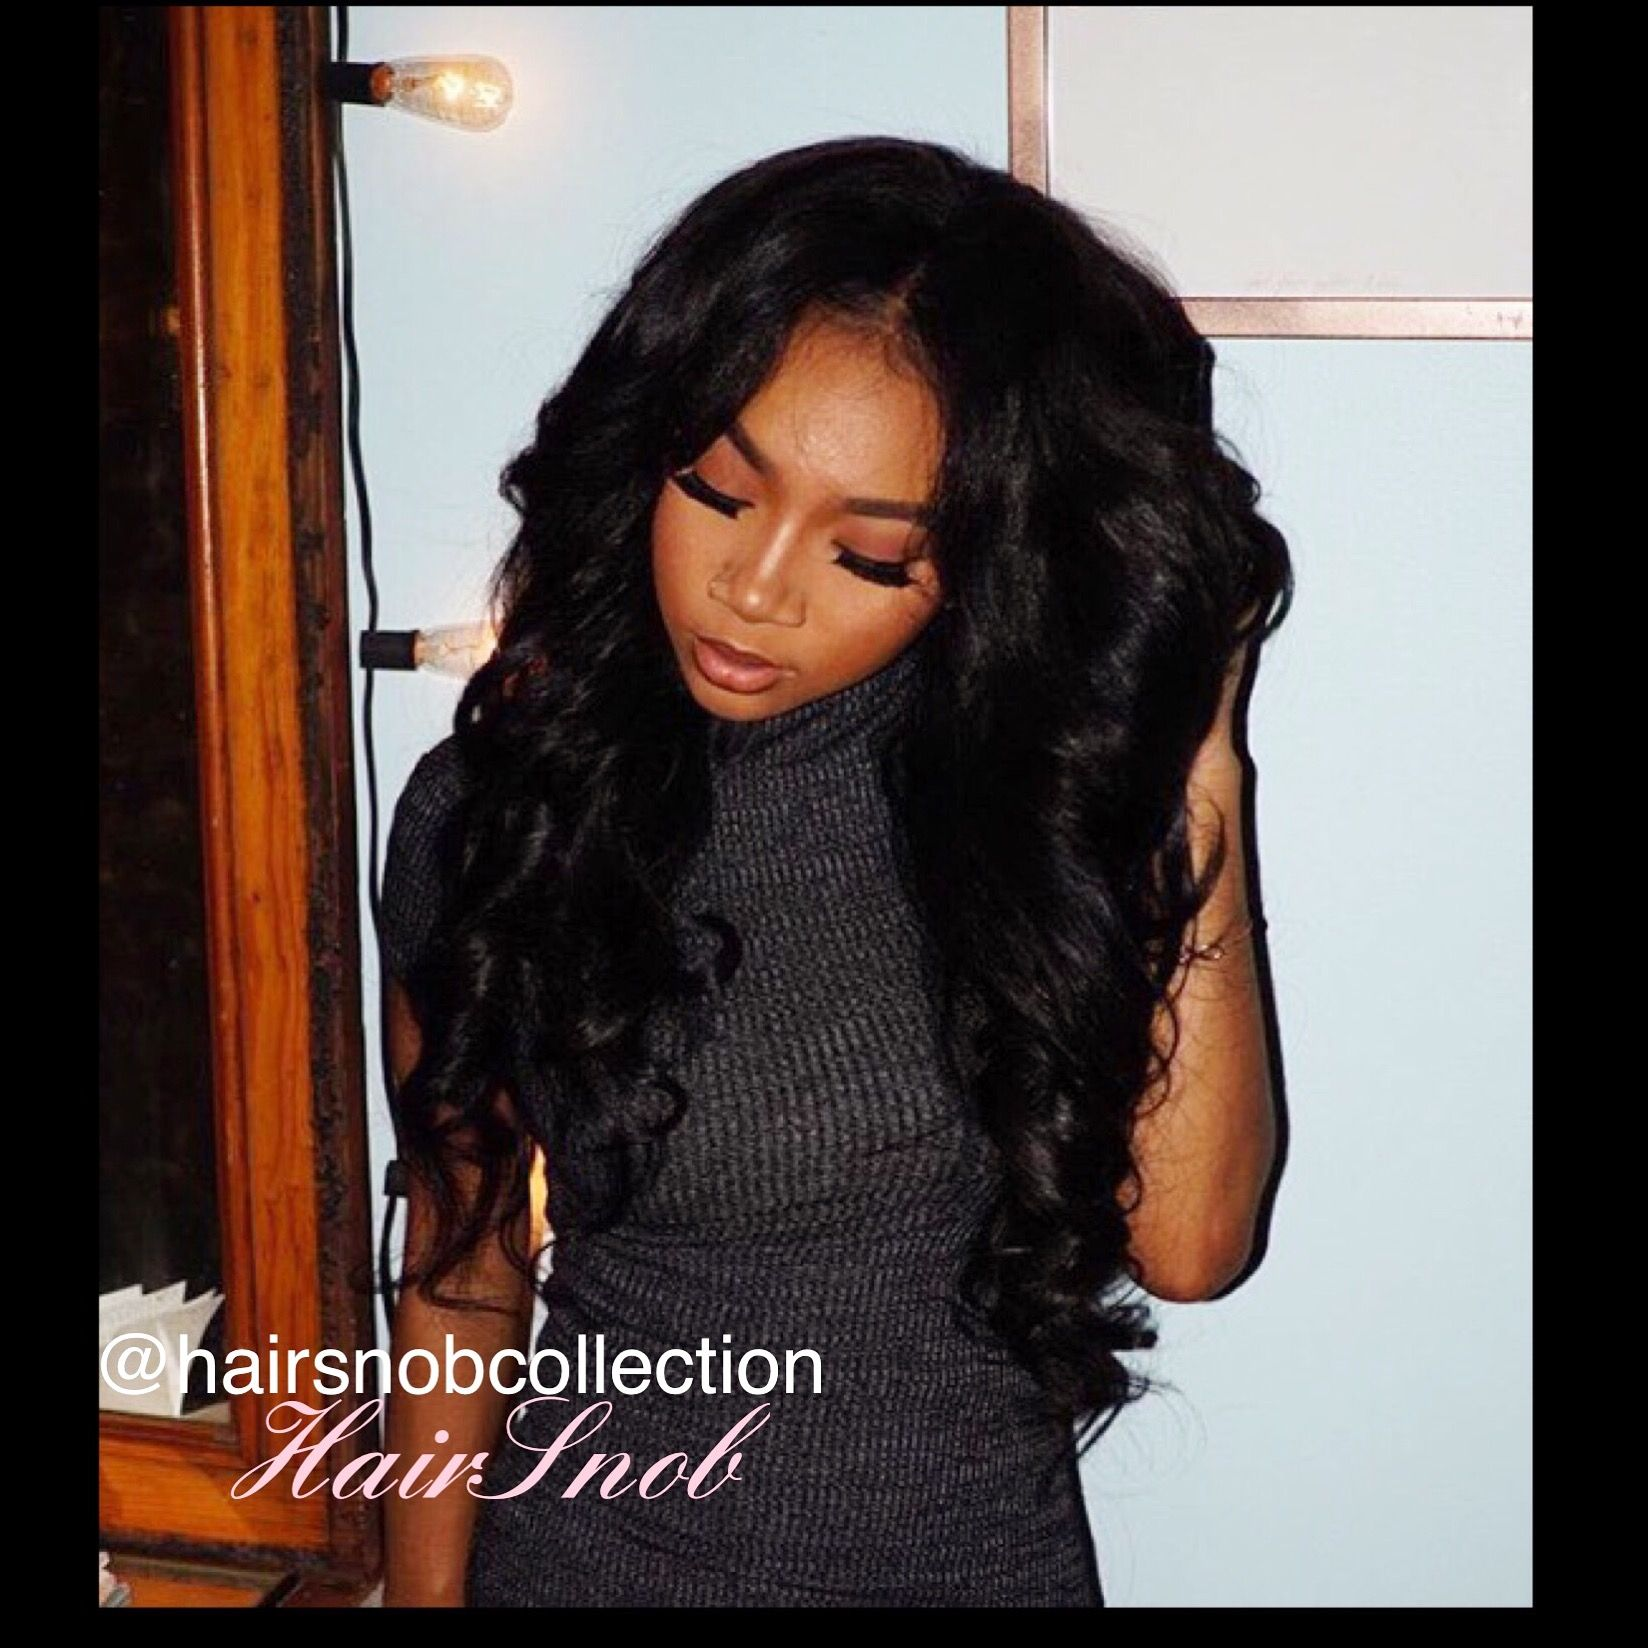 Peruvian Body Wave Virgin Hair Extensions Hair Snob Collection